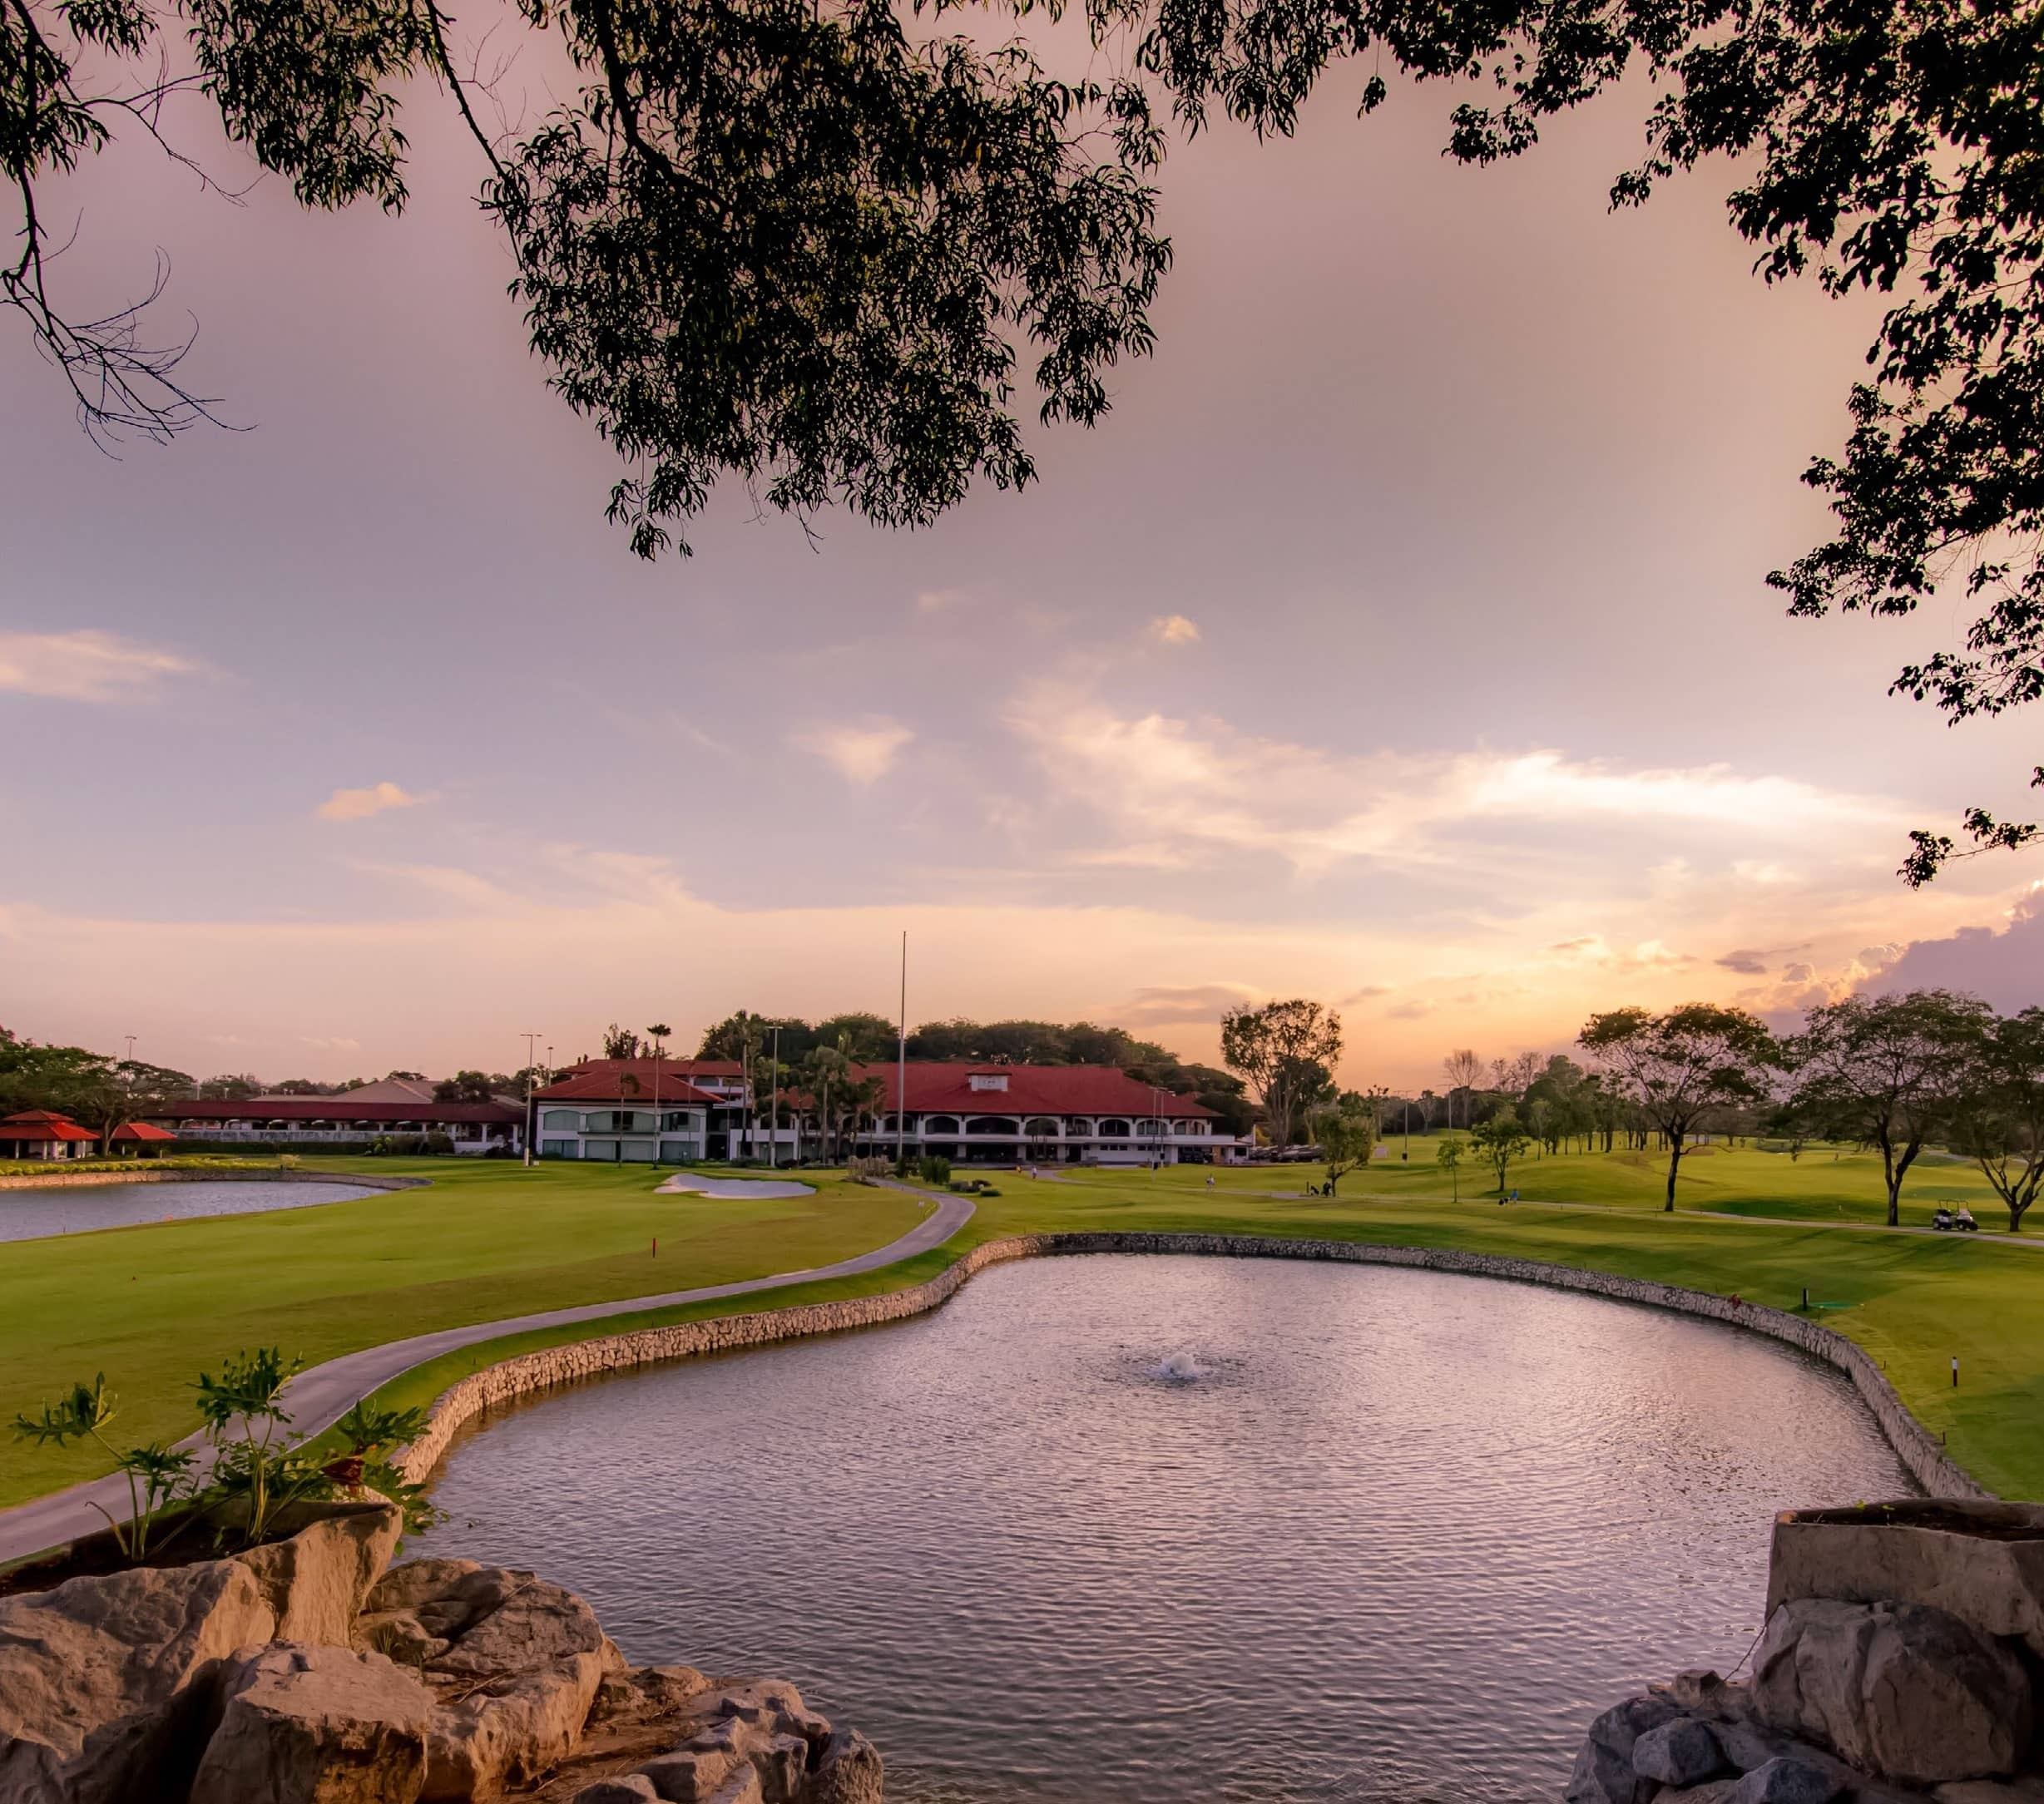 Tanah Merah Country Club's Charming New Garden Course